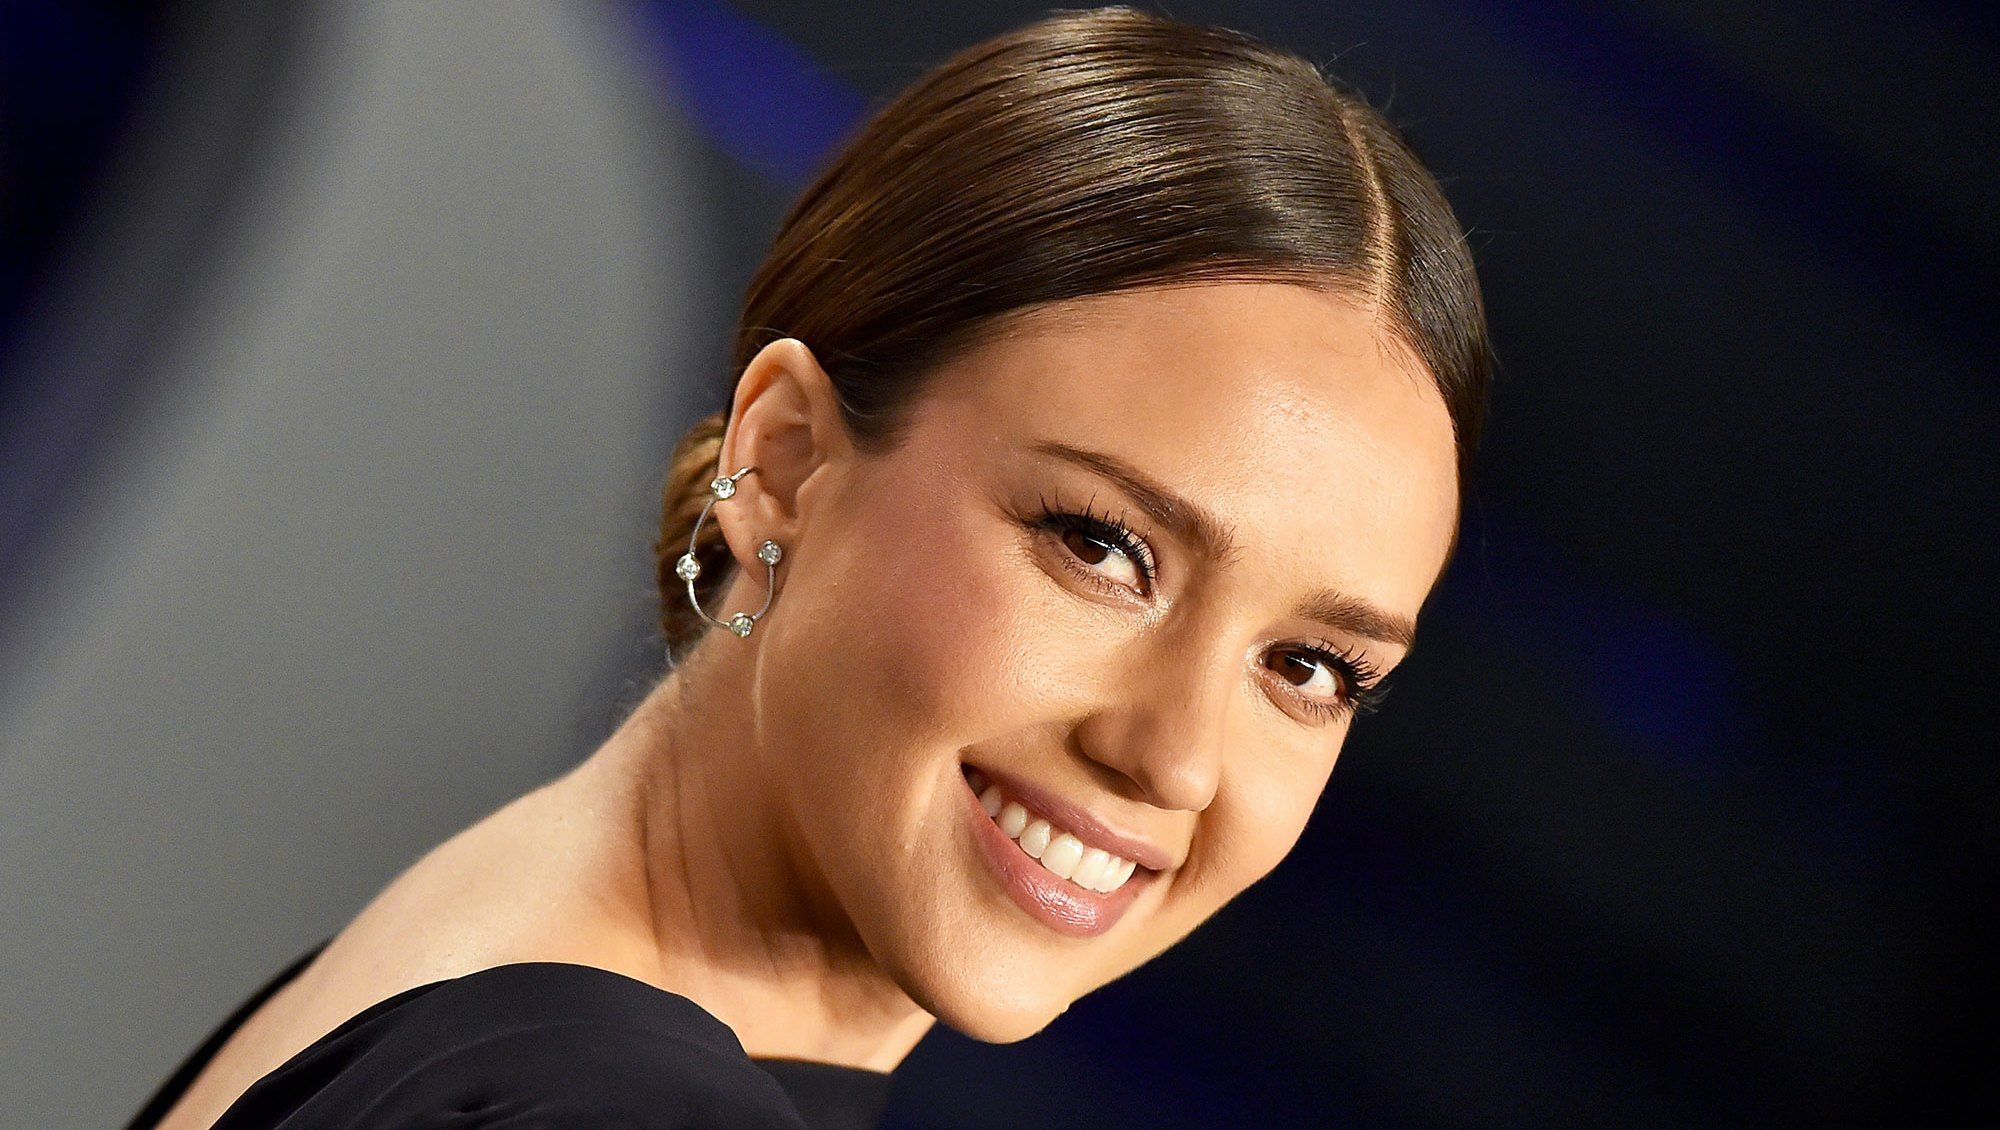 Jessica Alba Got Three Constellation Tattoos in Honor of Her Kids